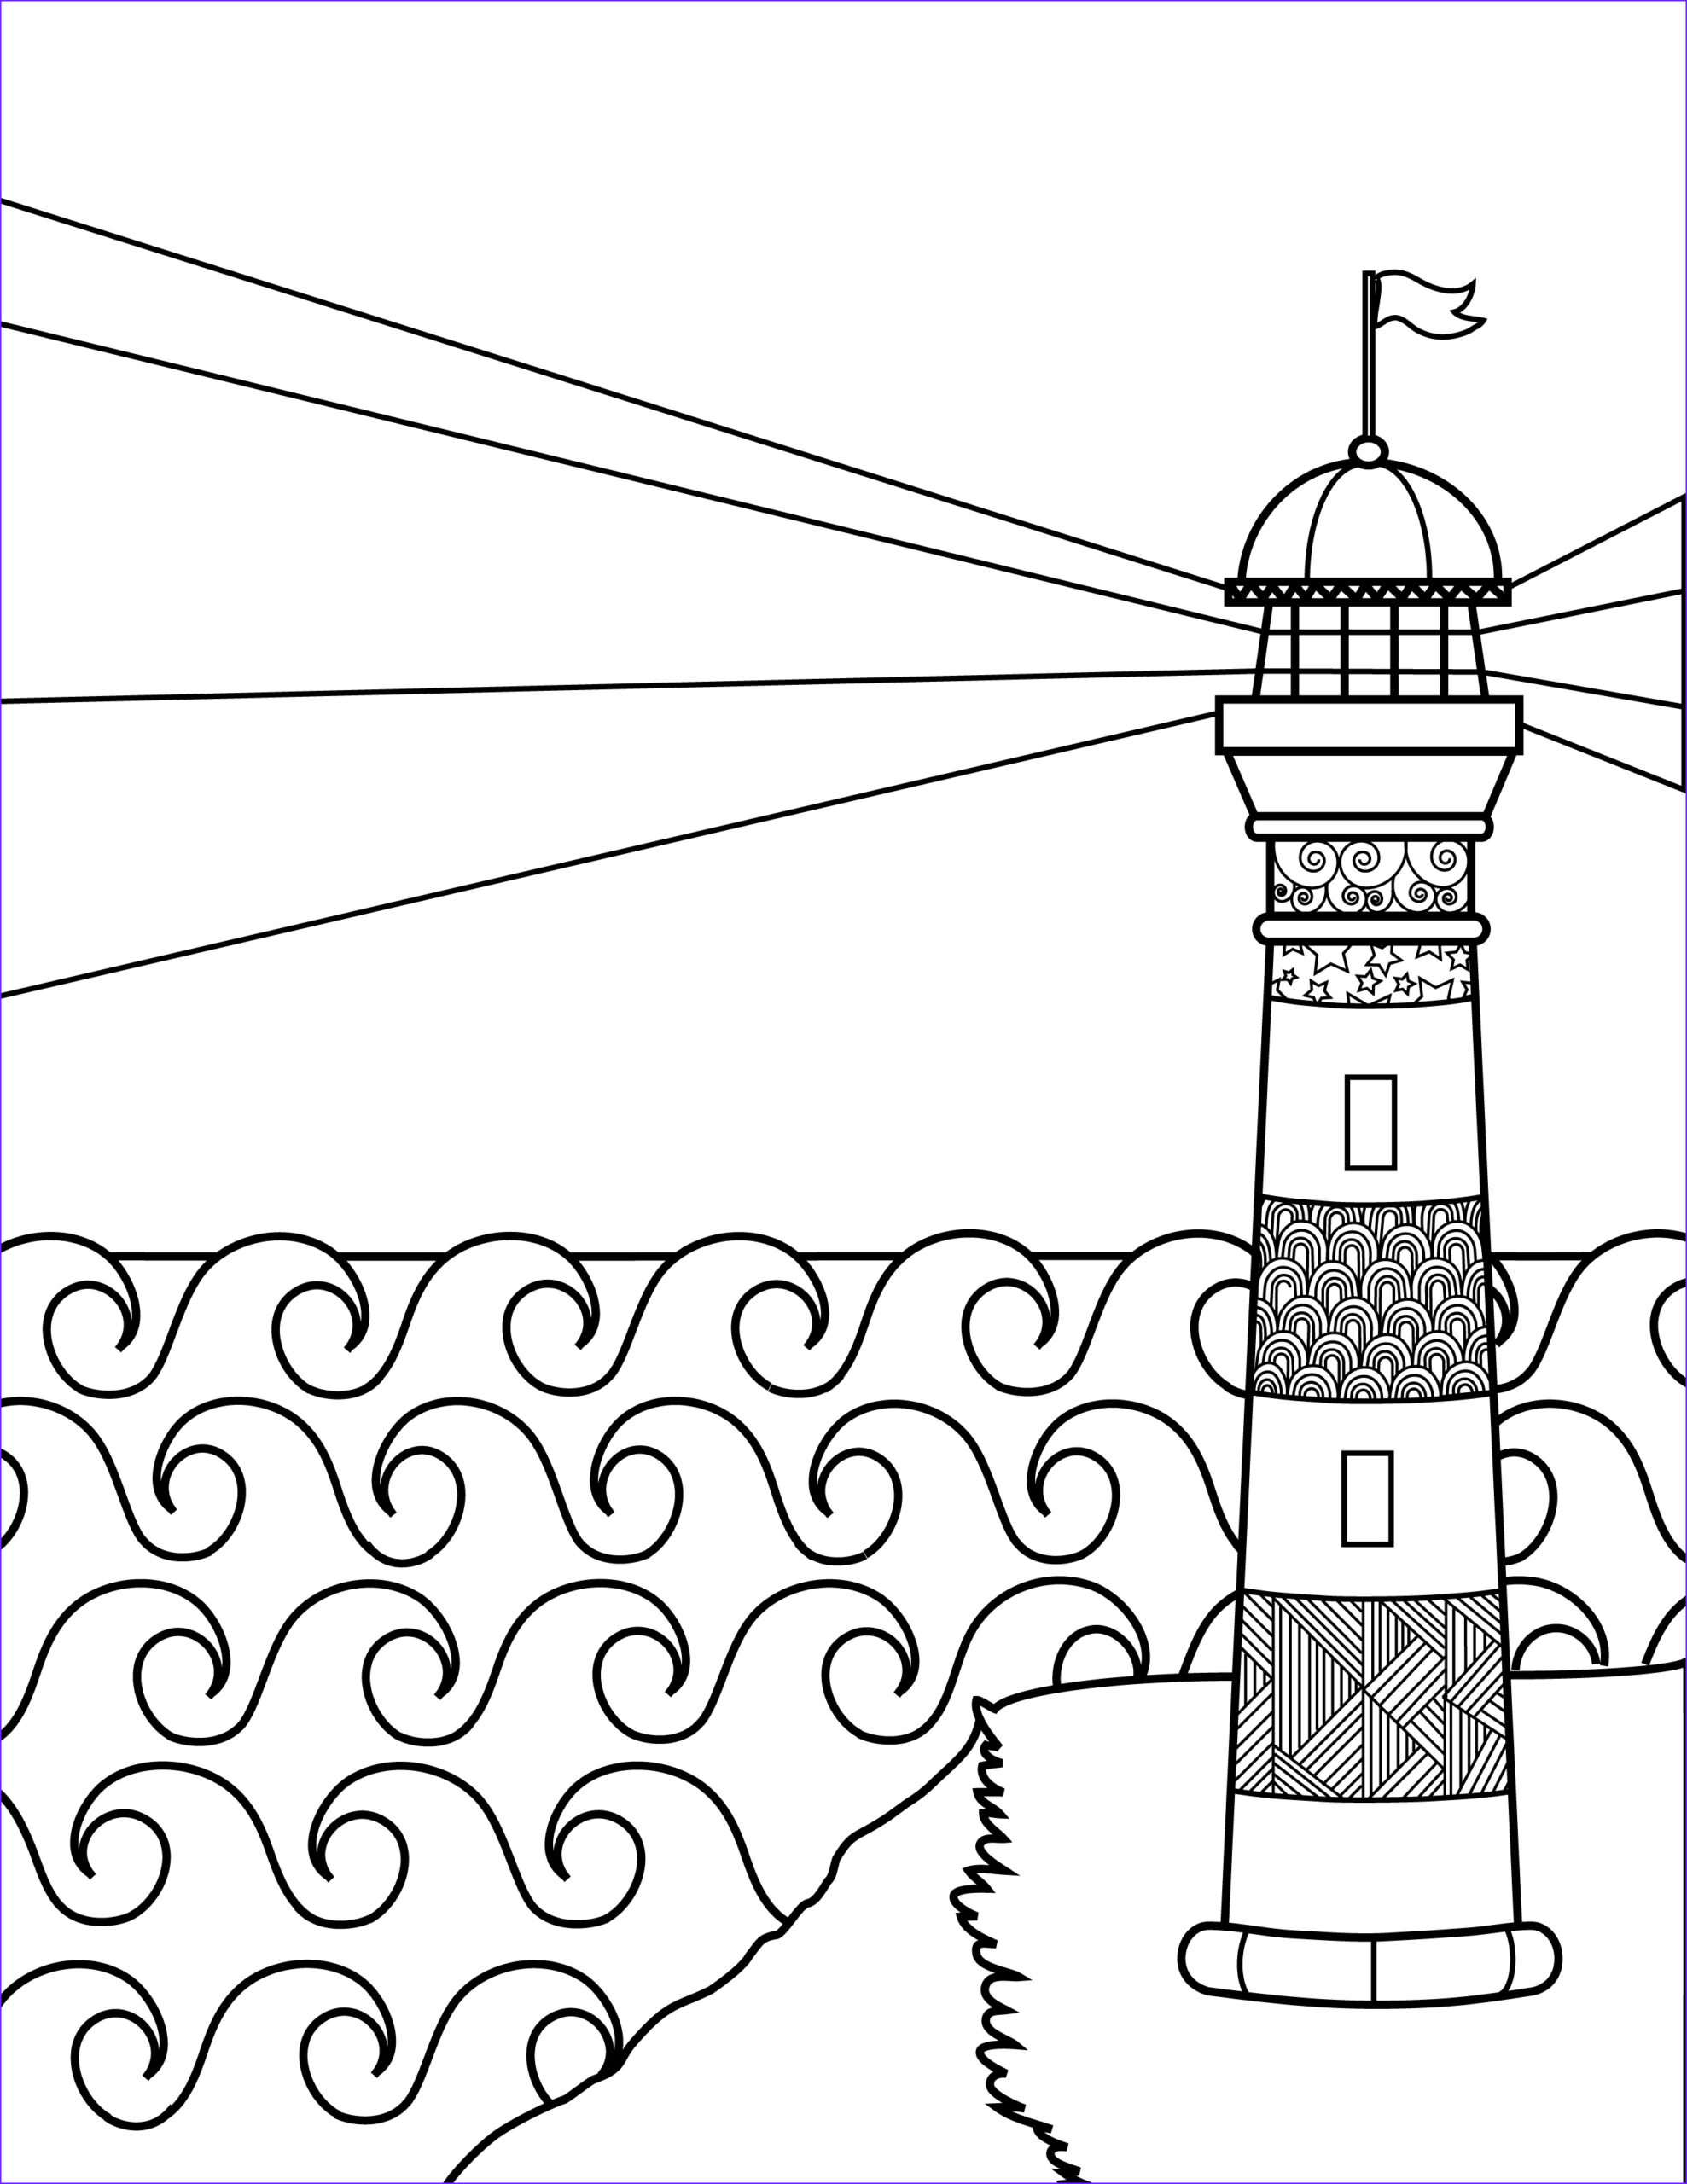 Lighthouse Coloring Pages New Stock Saam Trans Lighthouse Coloring Pages forge